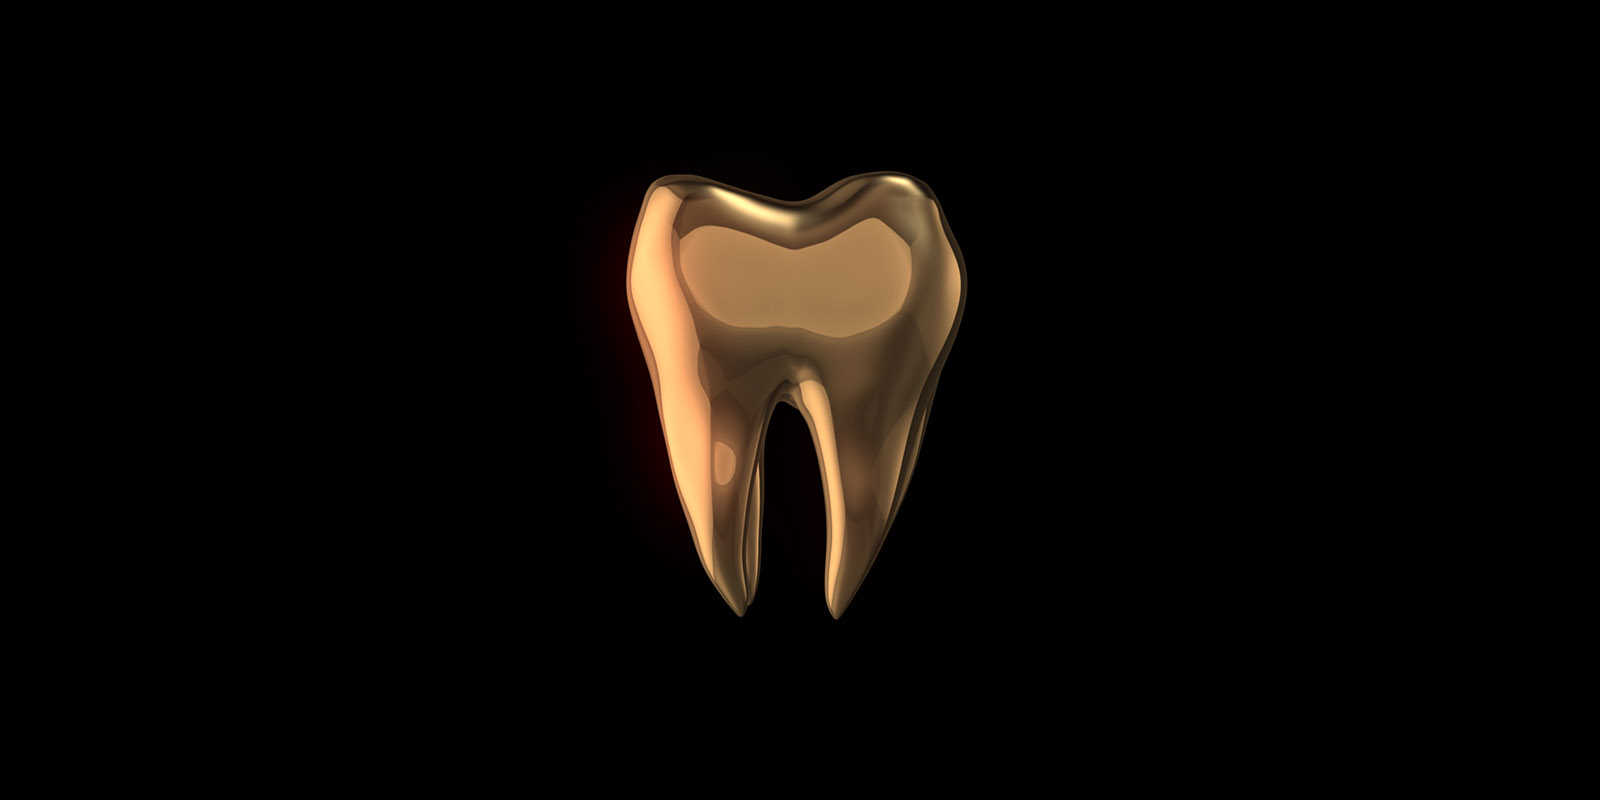 Golden tooth isolated on black background